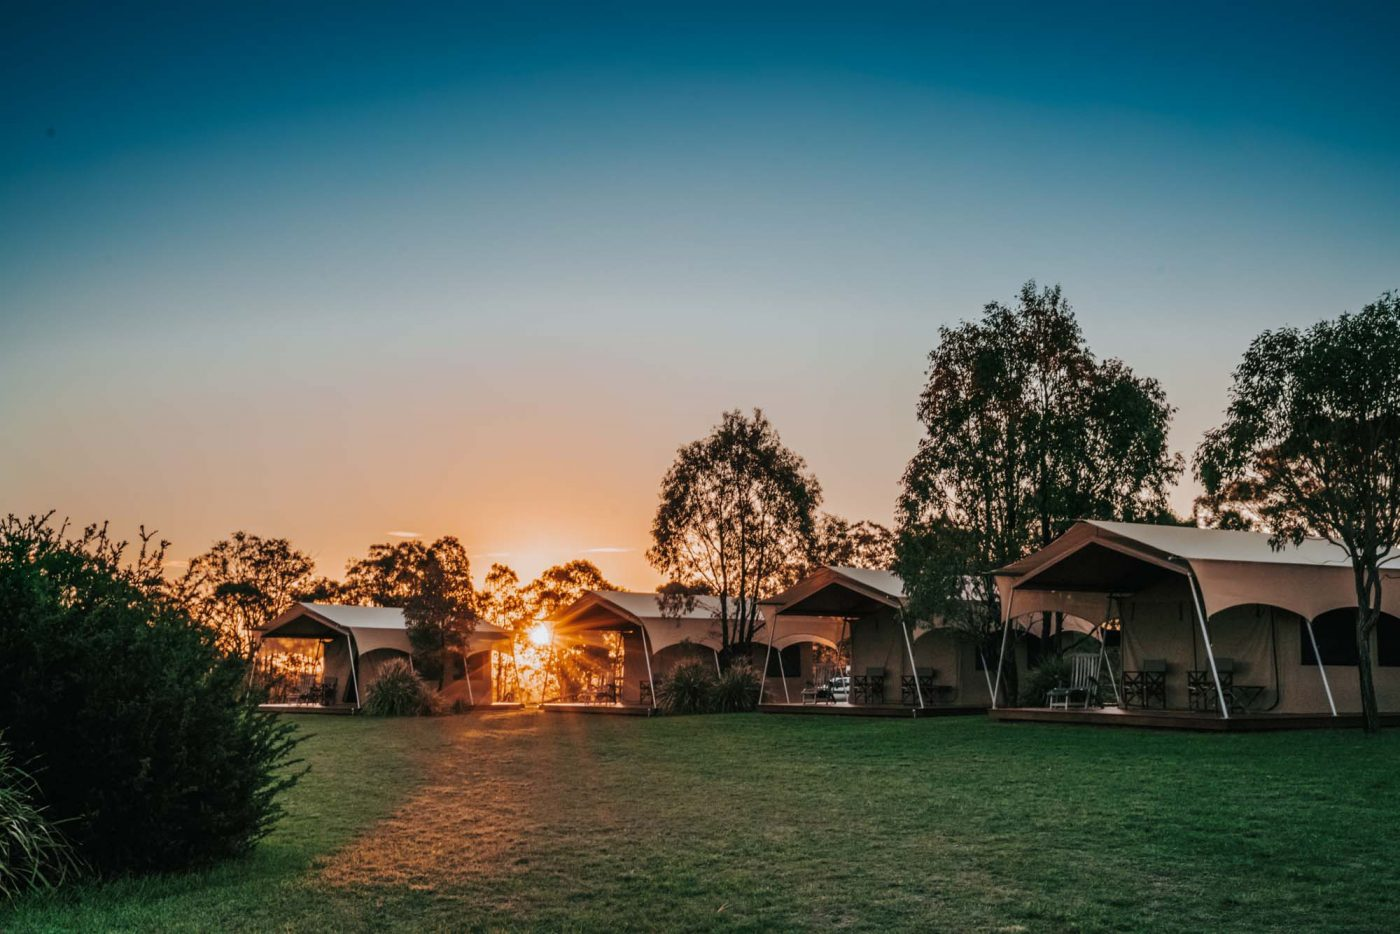 Spicers Canopy, a luxury glamping experience in Scenic Rim